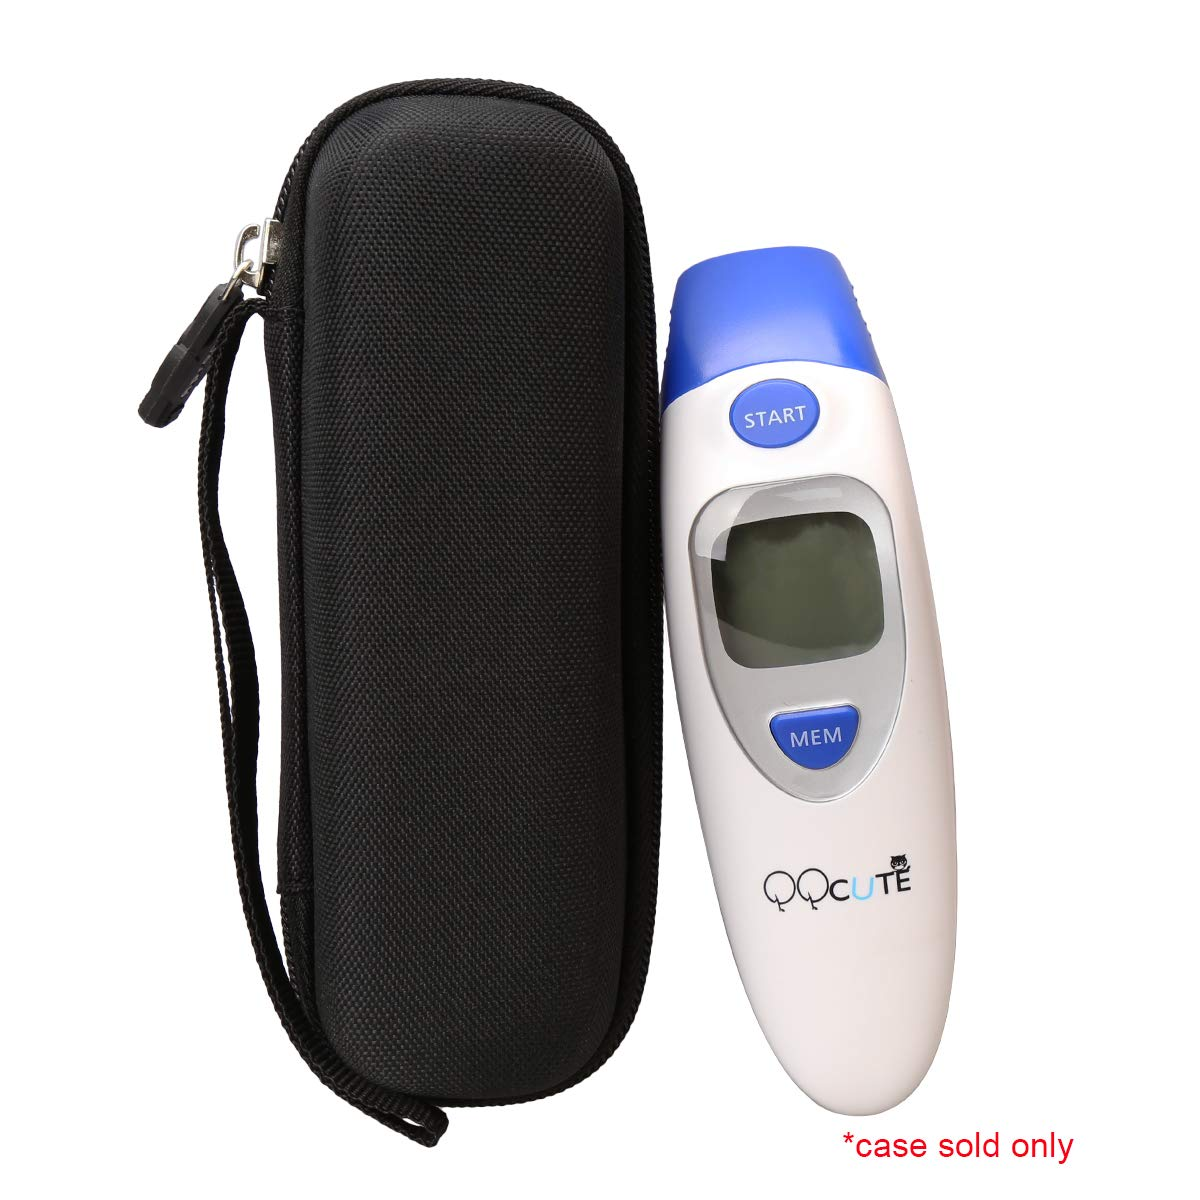 Hard Carrying Travel Case Bag for QQcute Digital Infrared Forehead Thermometer by Aproca by Aproca (Image #6)